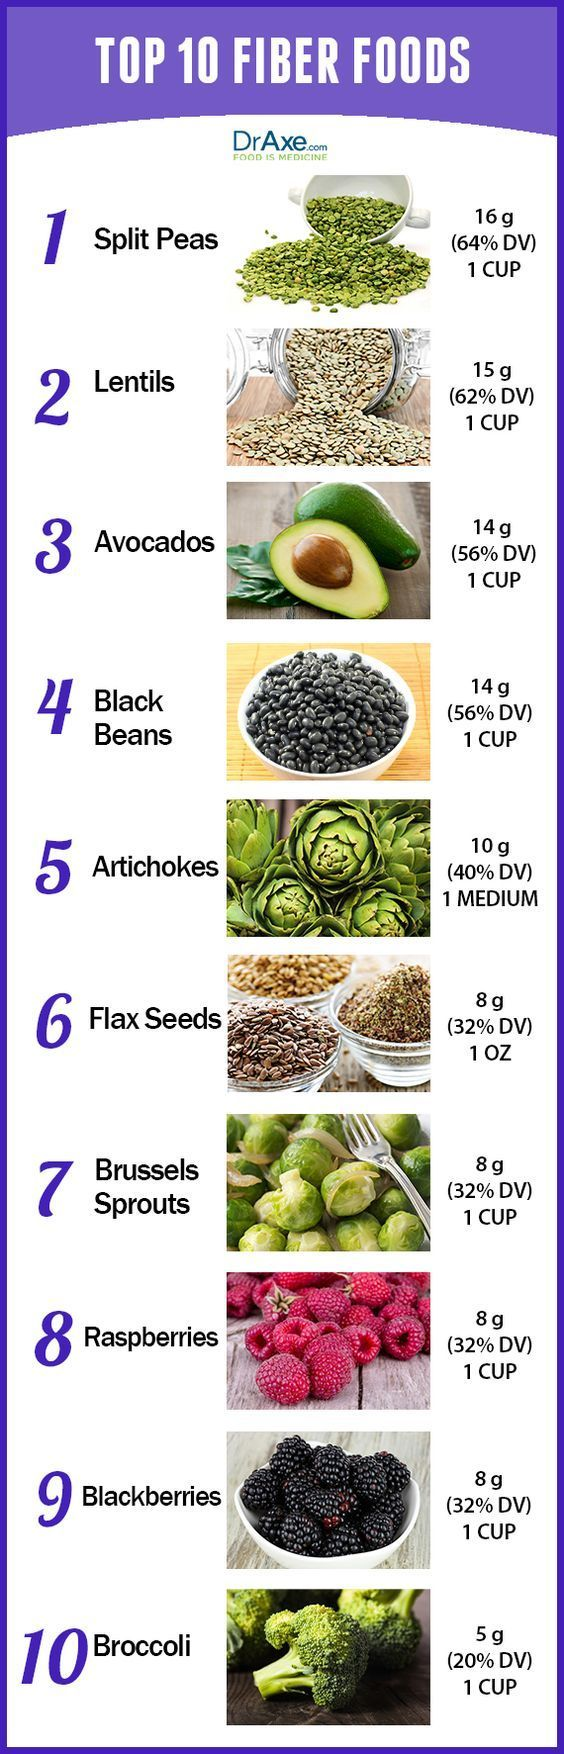 High fiber foods that is very helpful for our healthy facts.We must take them regularly as our daily meal.